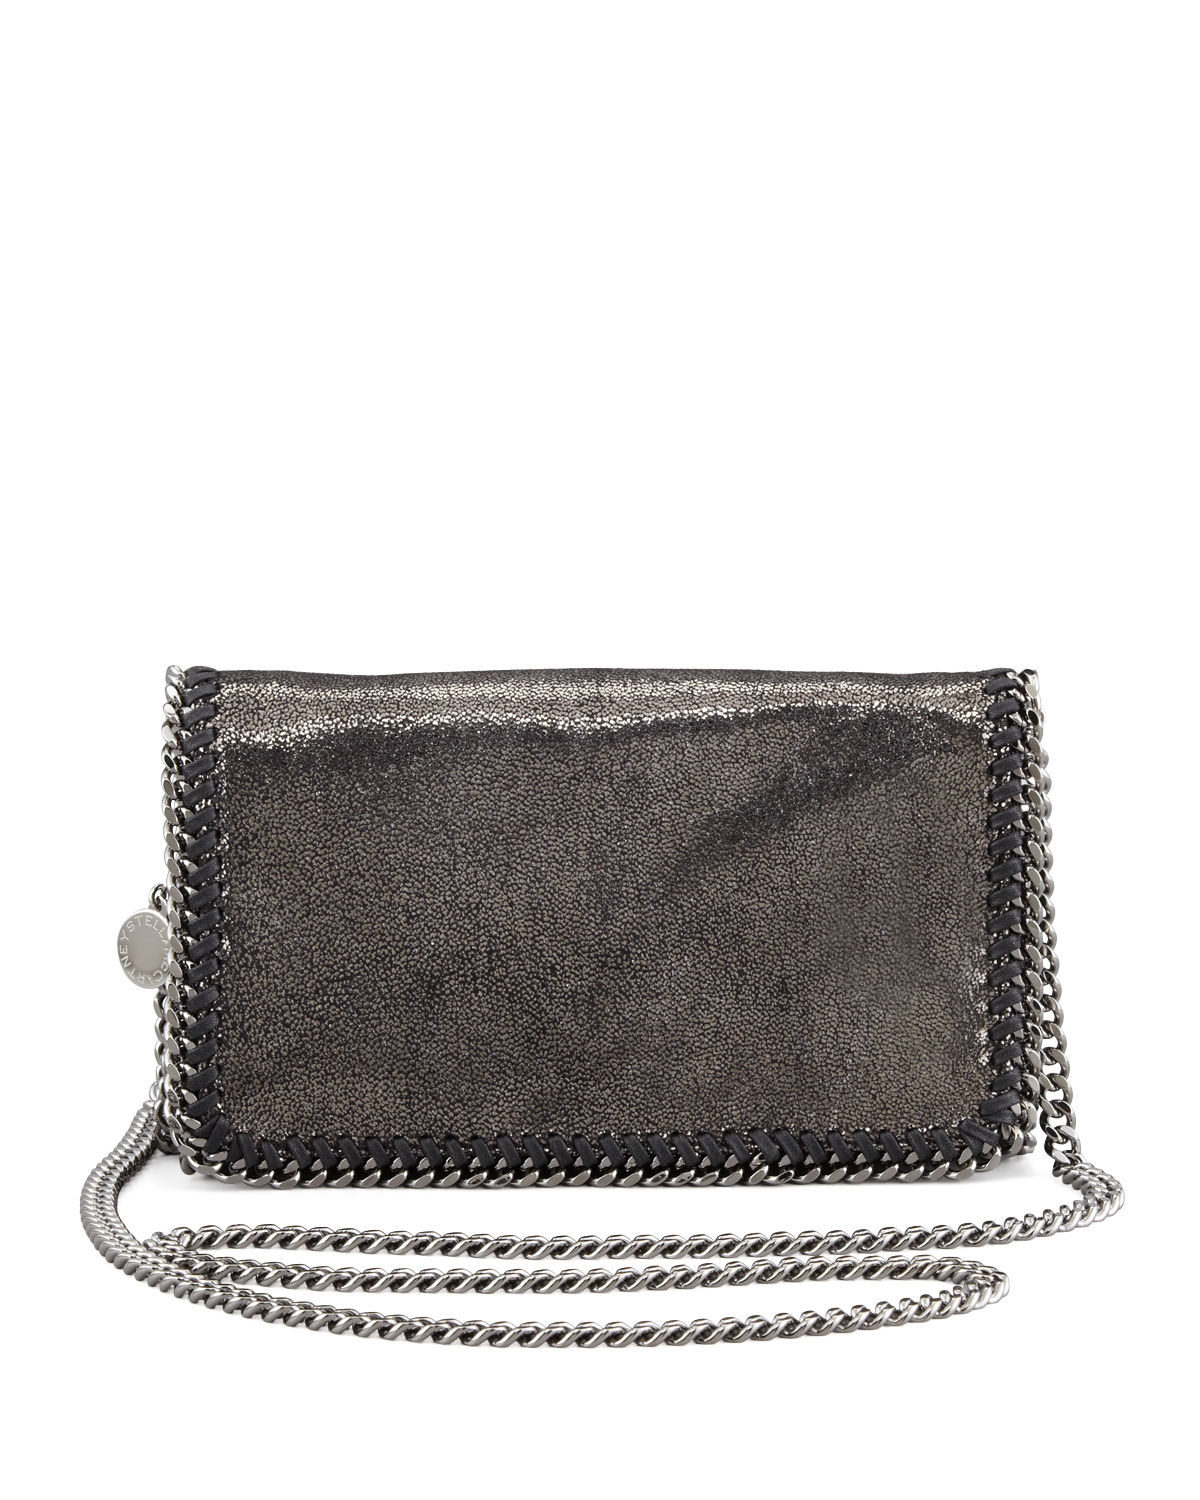 Stella McCartney Falabella Crossbody Bag  8af9a3c692c09